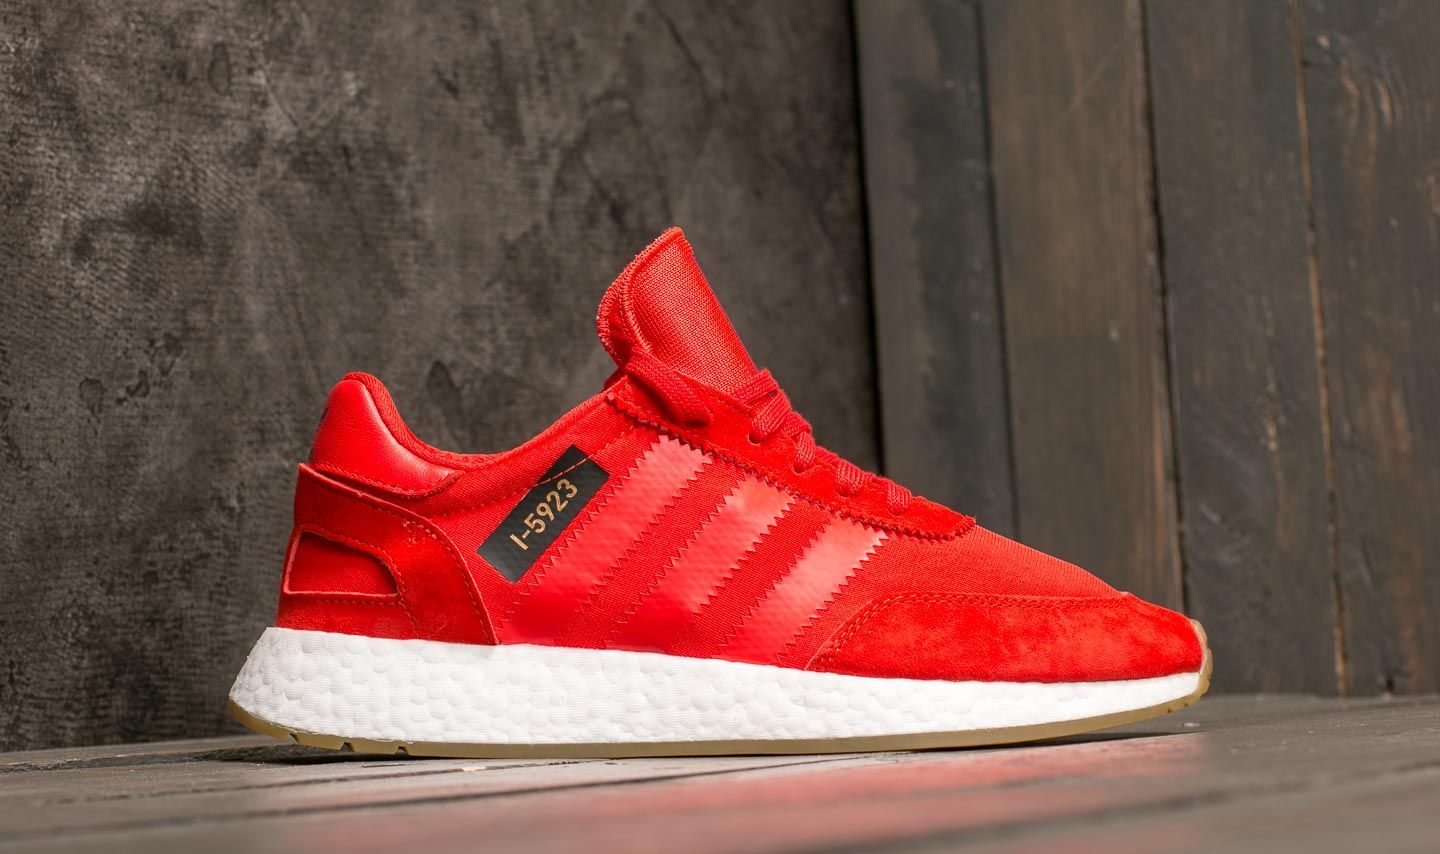 bafe7256e185cf adidas I-5923 Core Red  Ftw White  Gum 3 at a great price